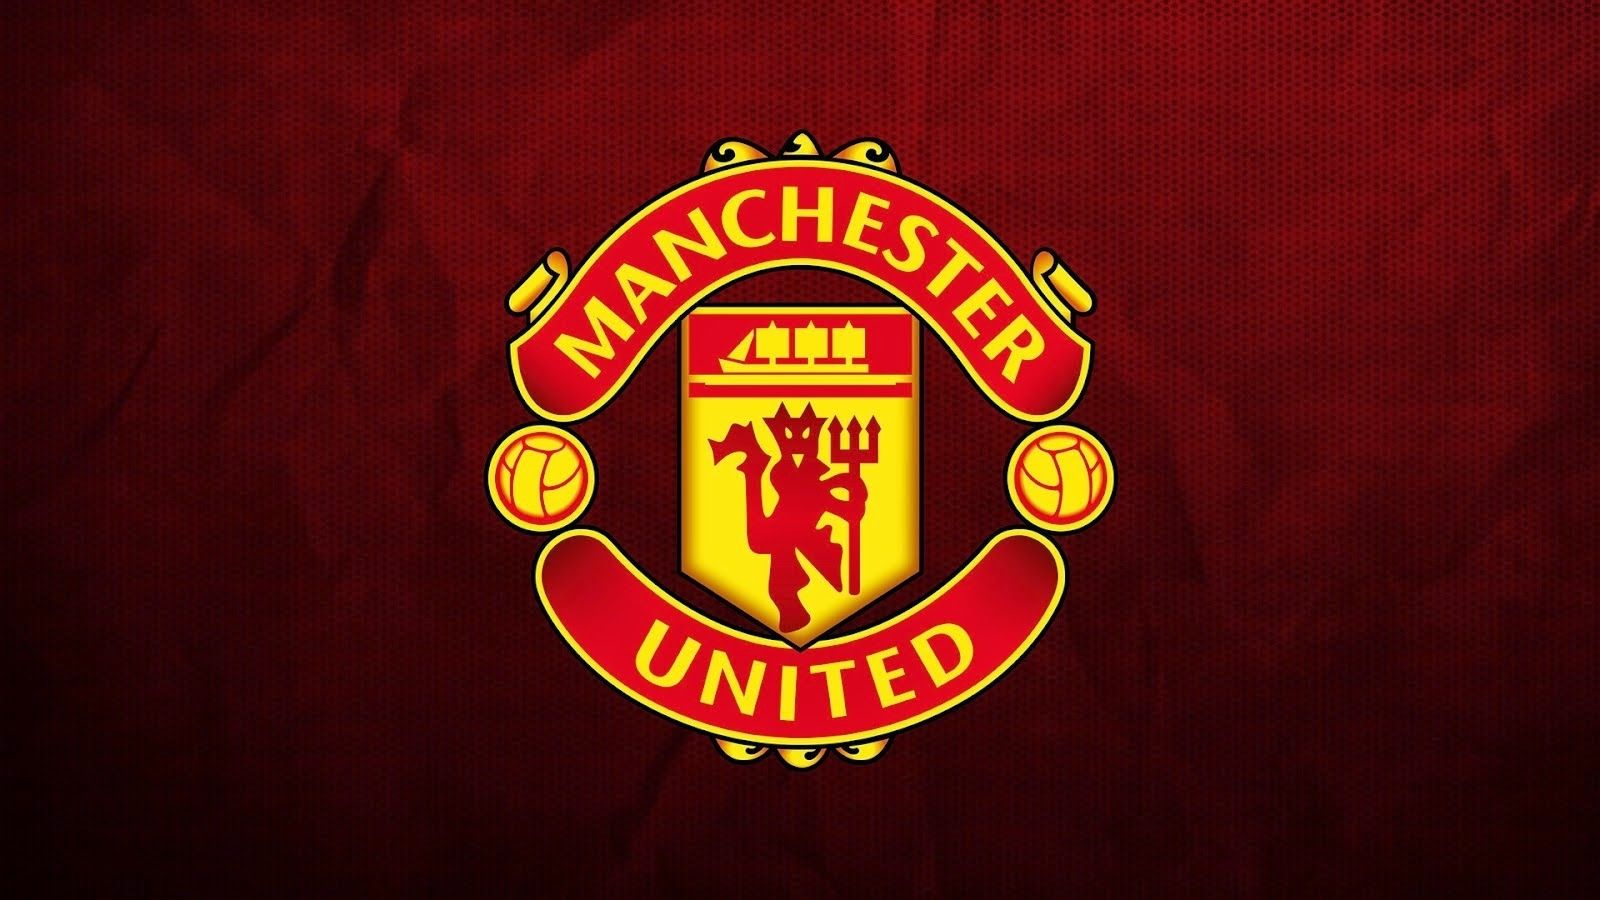 10 Top Manchester United Wallpaper Download Full Hd 1920 1080 For Pc Desktop Manchester United Wallpaper Manchester United Logo Manchester United Football Club